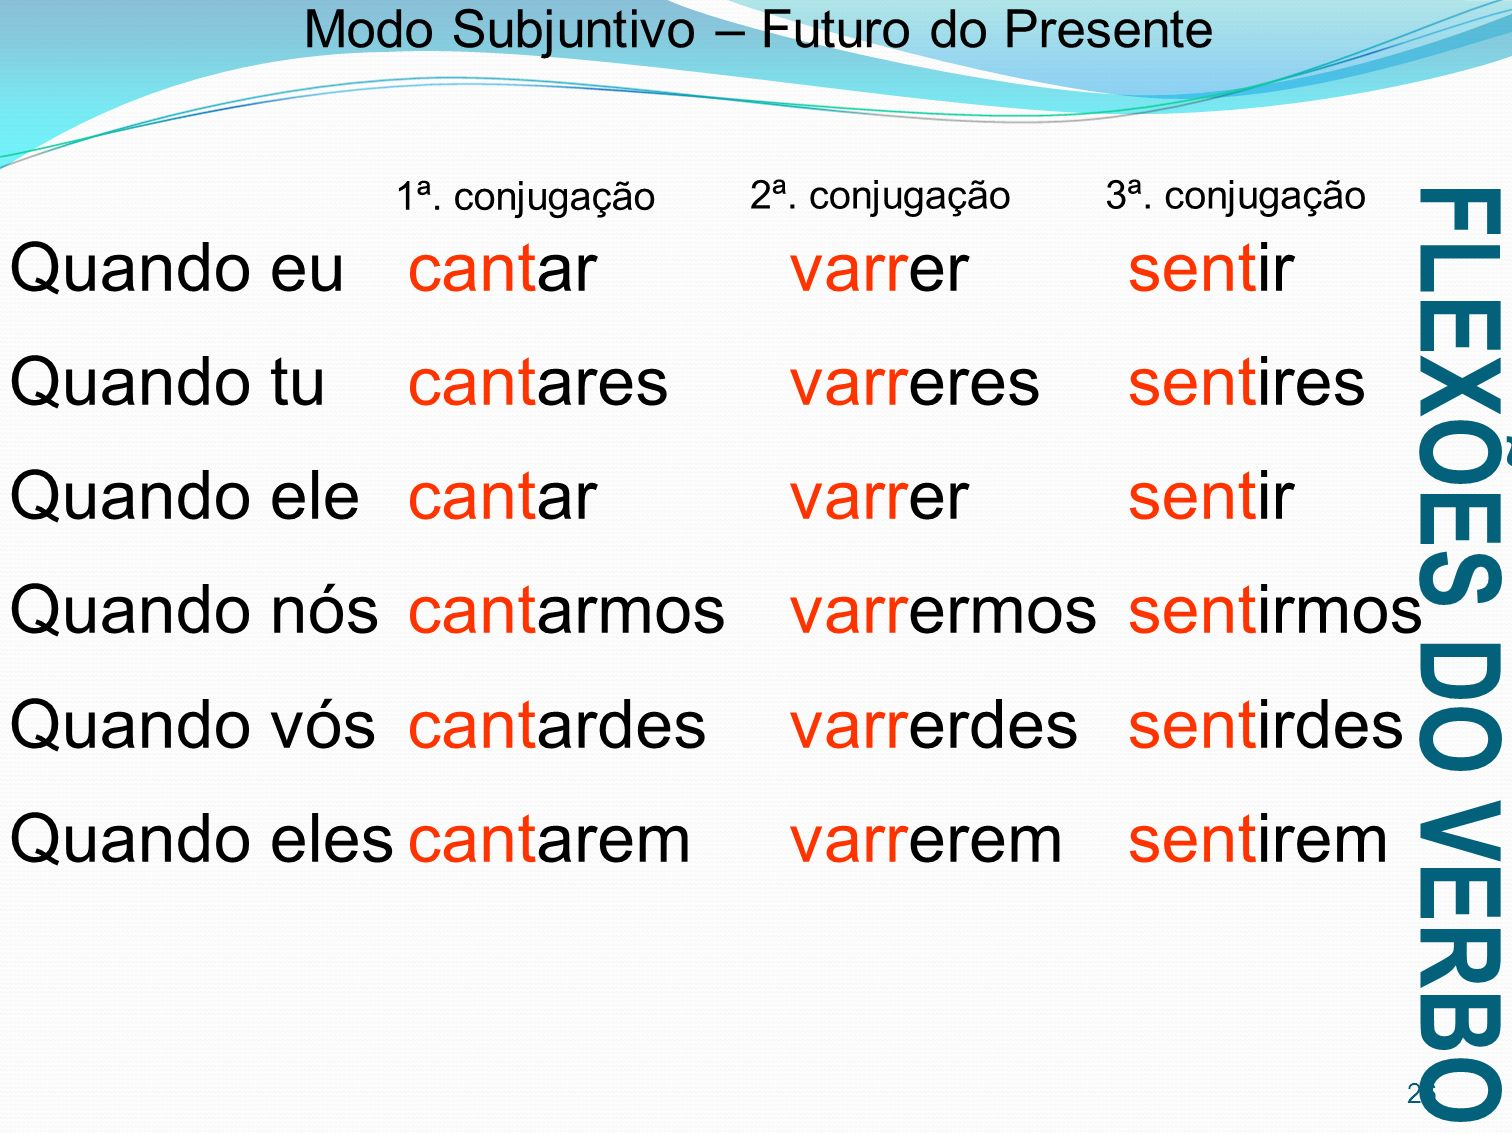 Modo Subjuntivo – Futuro do Presente